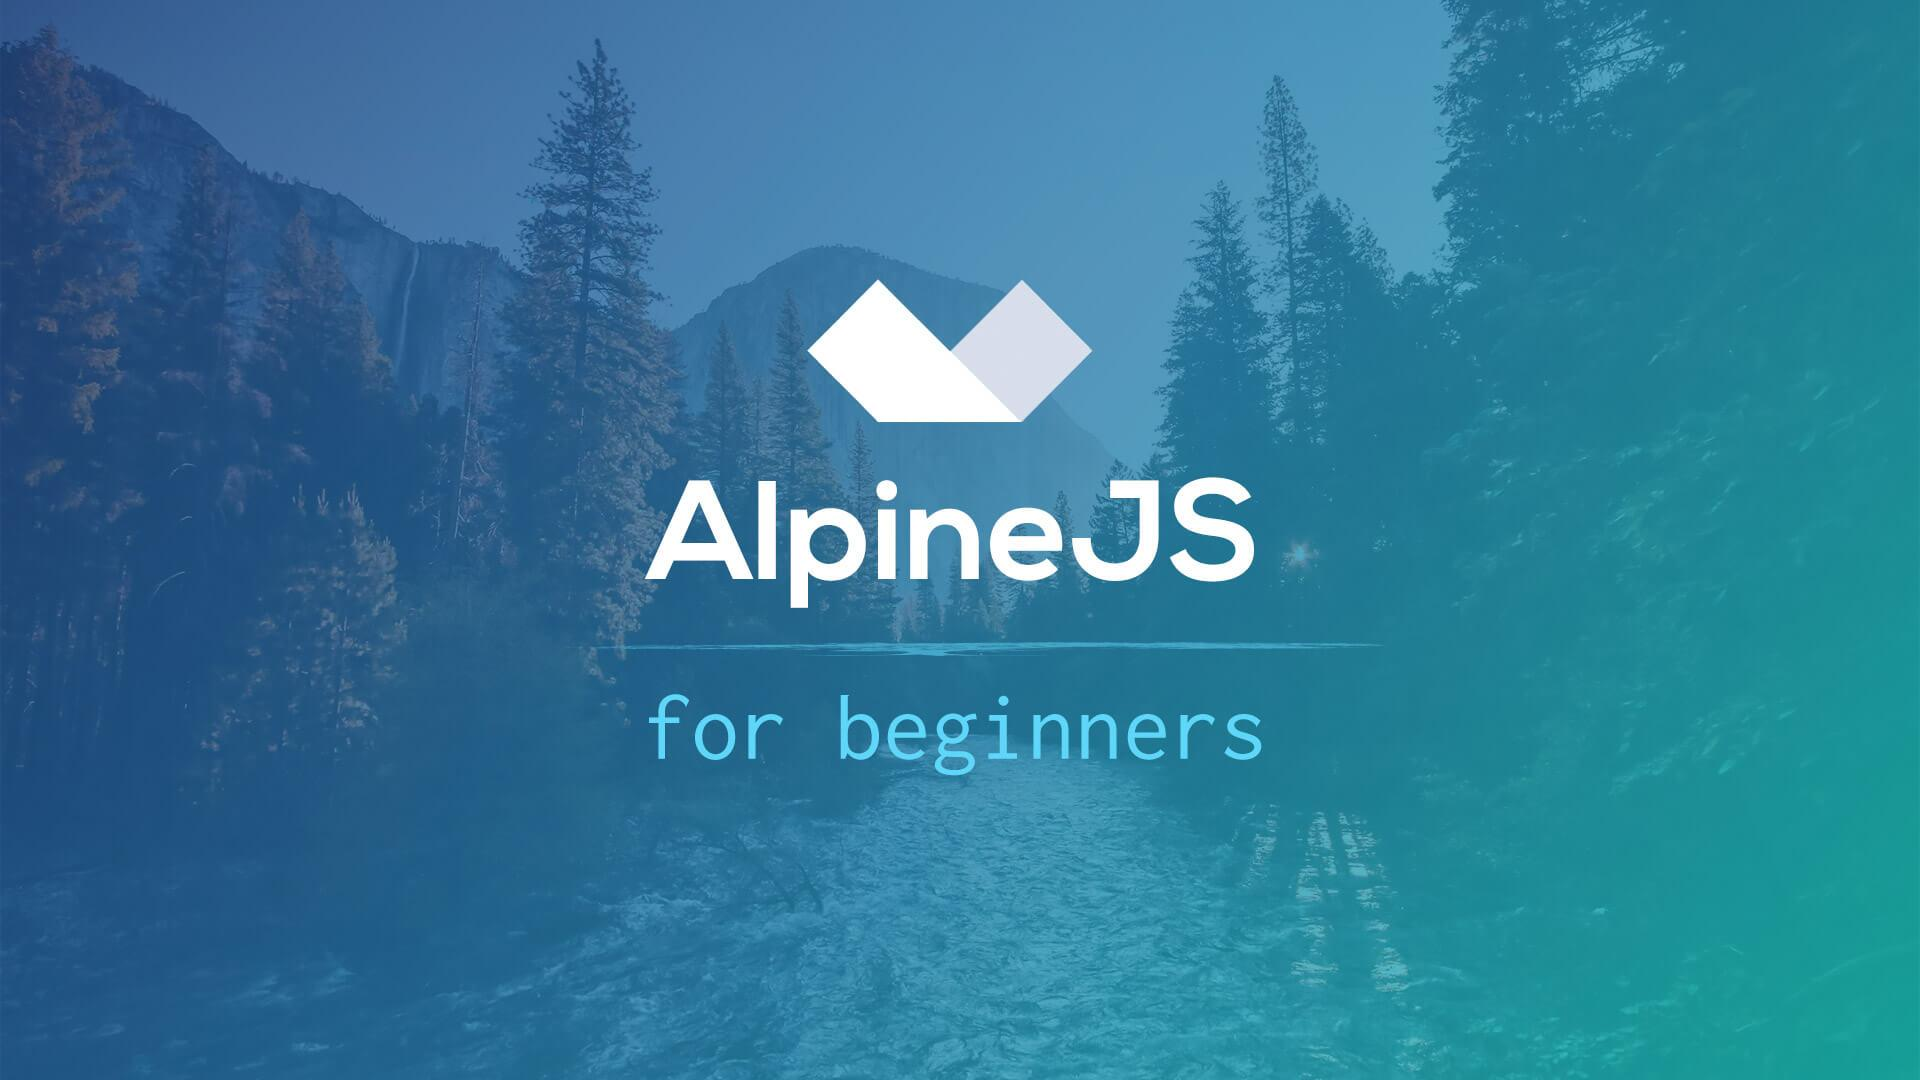 AlpineJS for Beginners